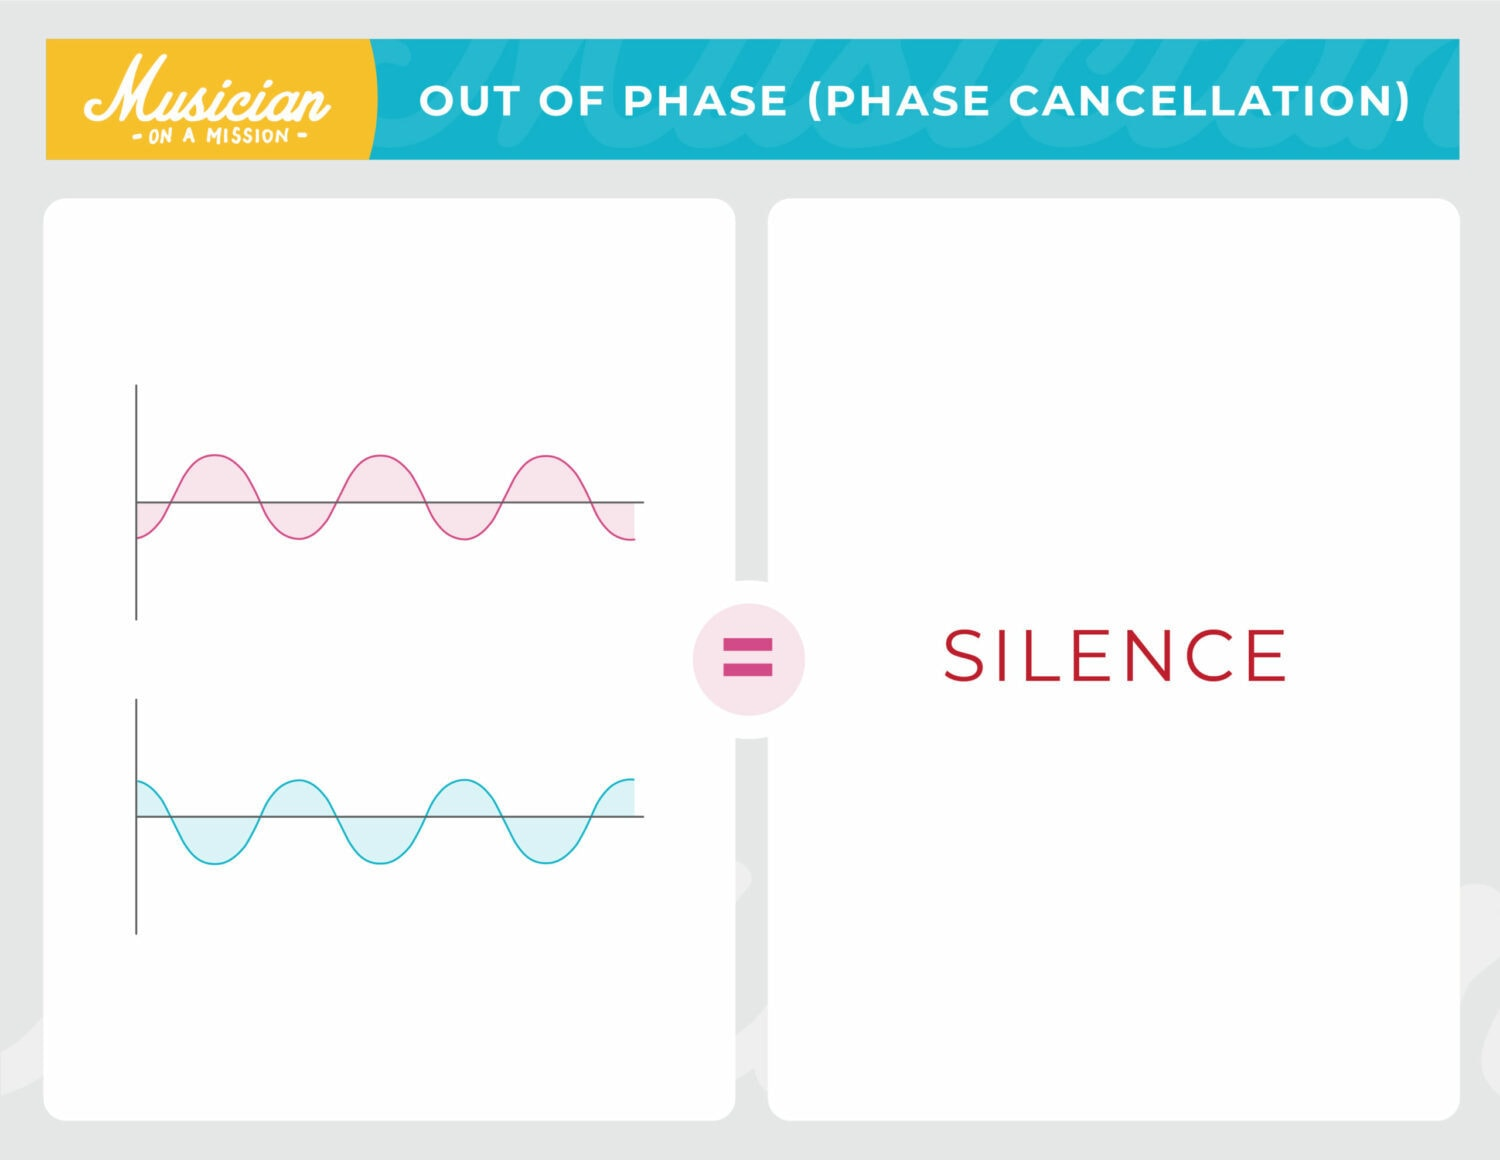 diagram of two identical sounds that are out of phase, resulting in silence